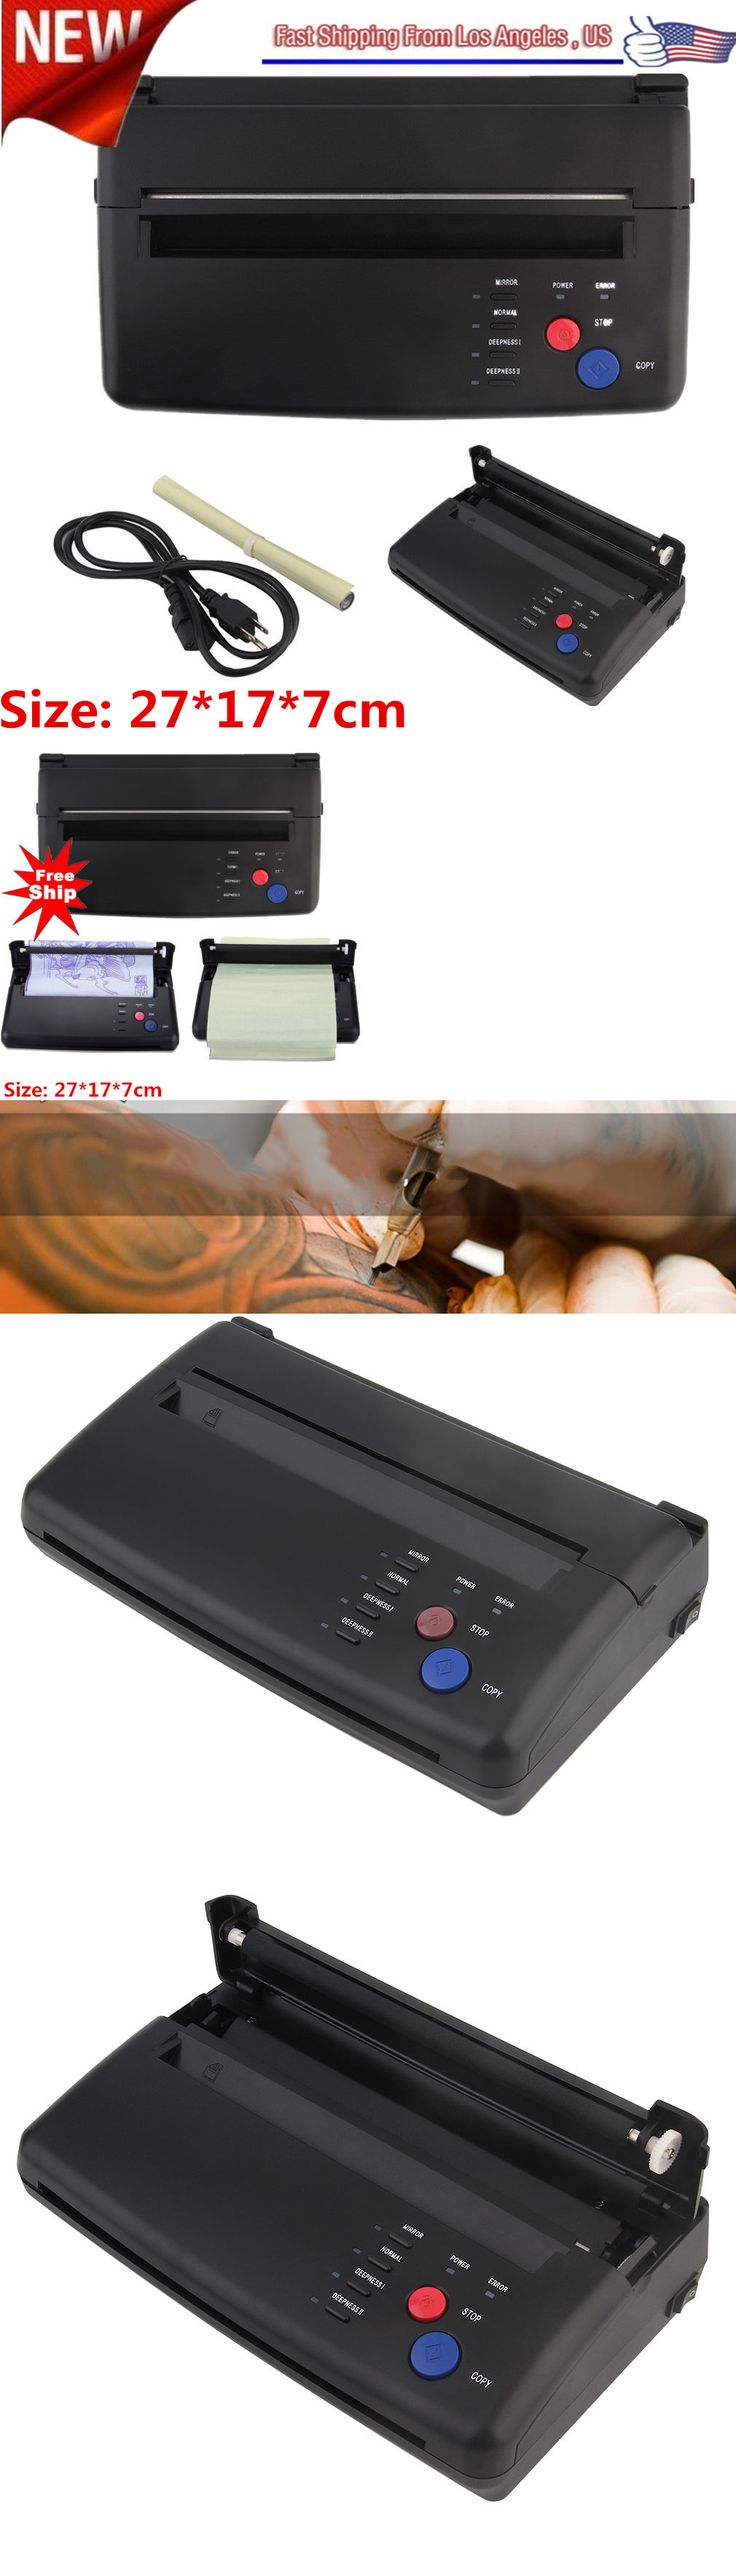 Tattoo Supplies: Newest A5 A4 Tattoo Transfer Copier Printer Machine Thermal Stencil Maker Usa My BUY IT NOW ONLY: $111.09